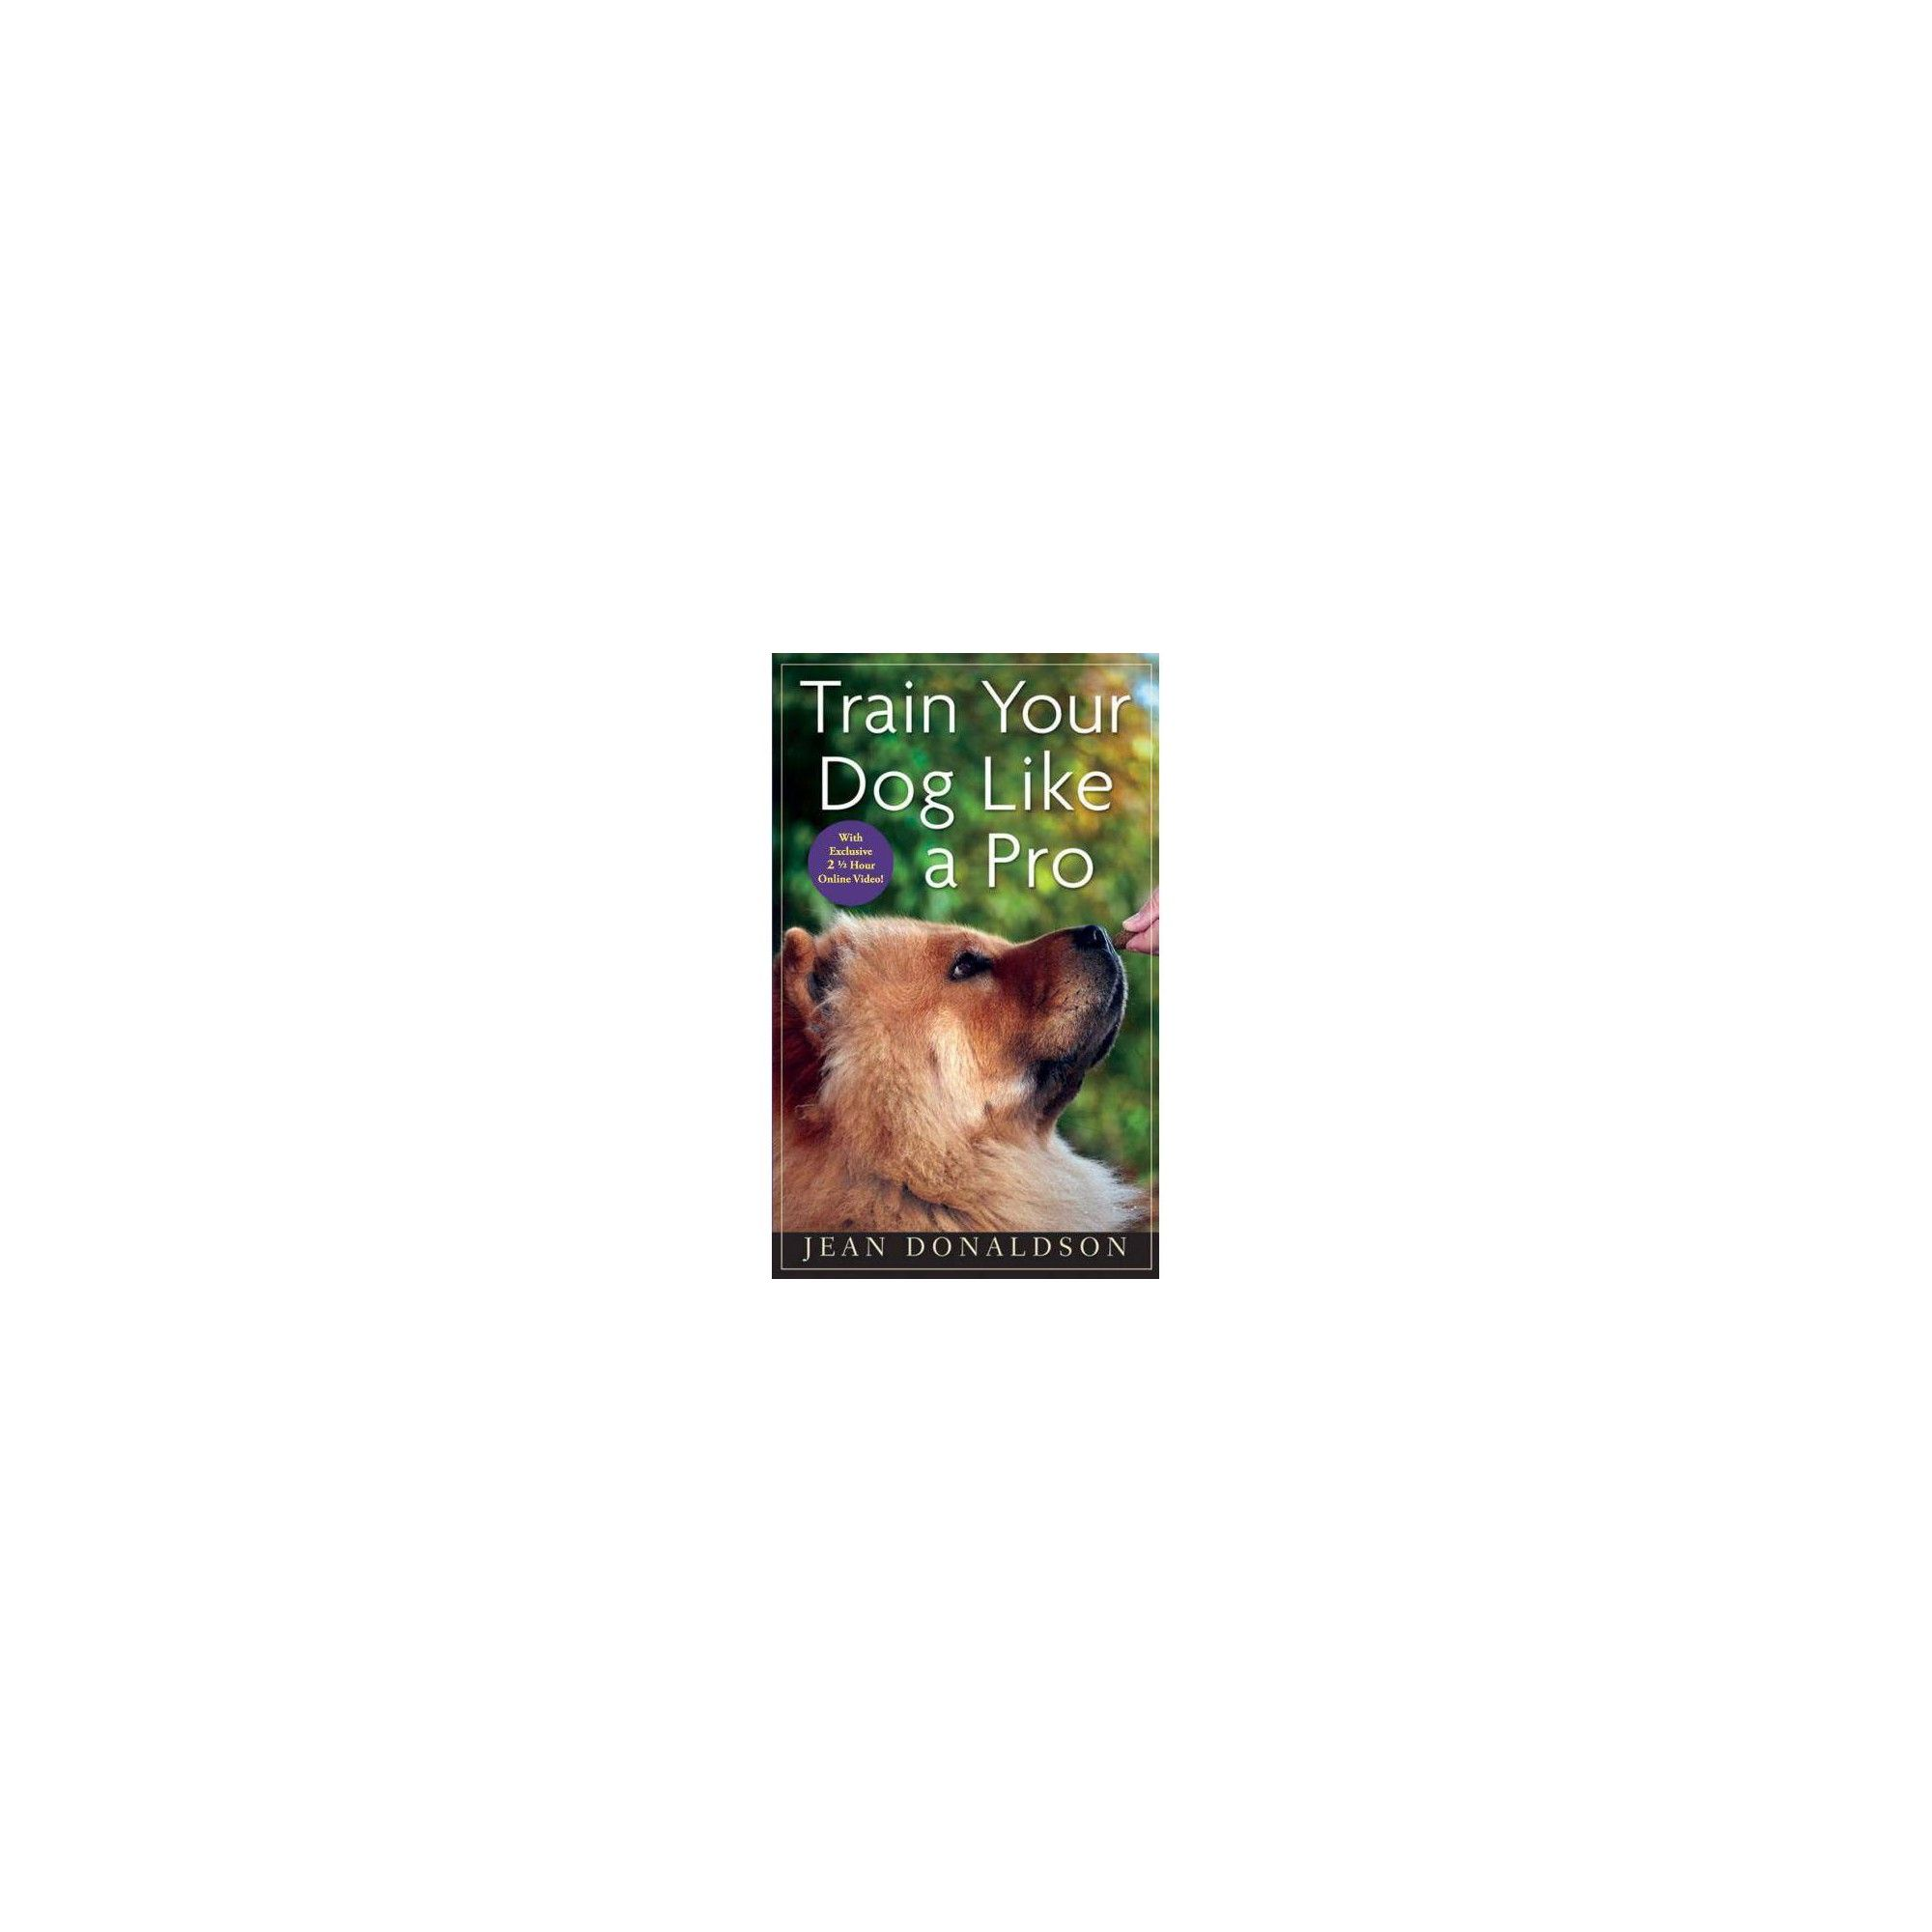 Train Your Dog Like A Pro By Jean Donaldson Hardcover